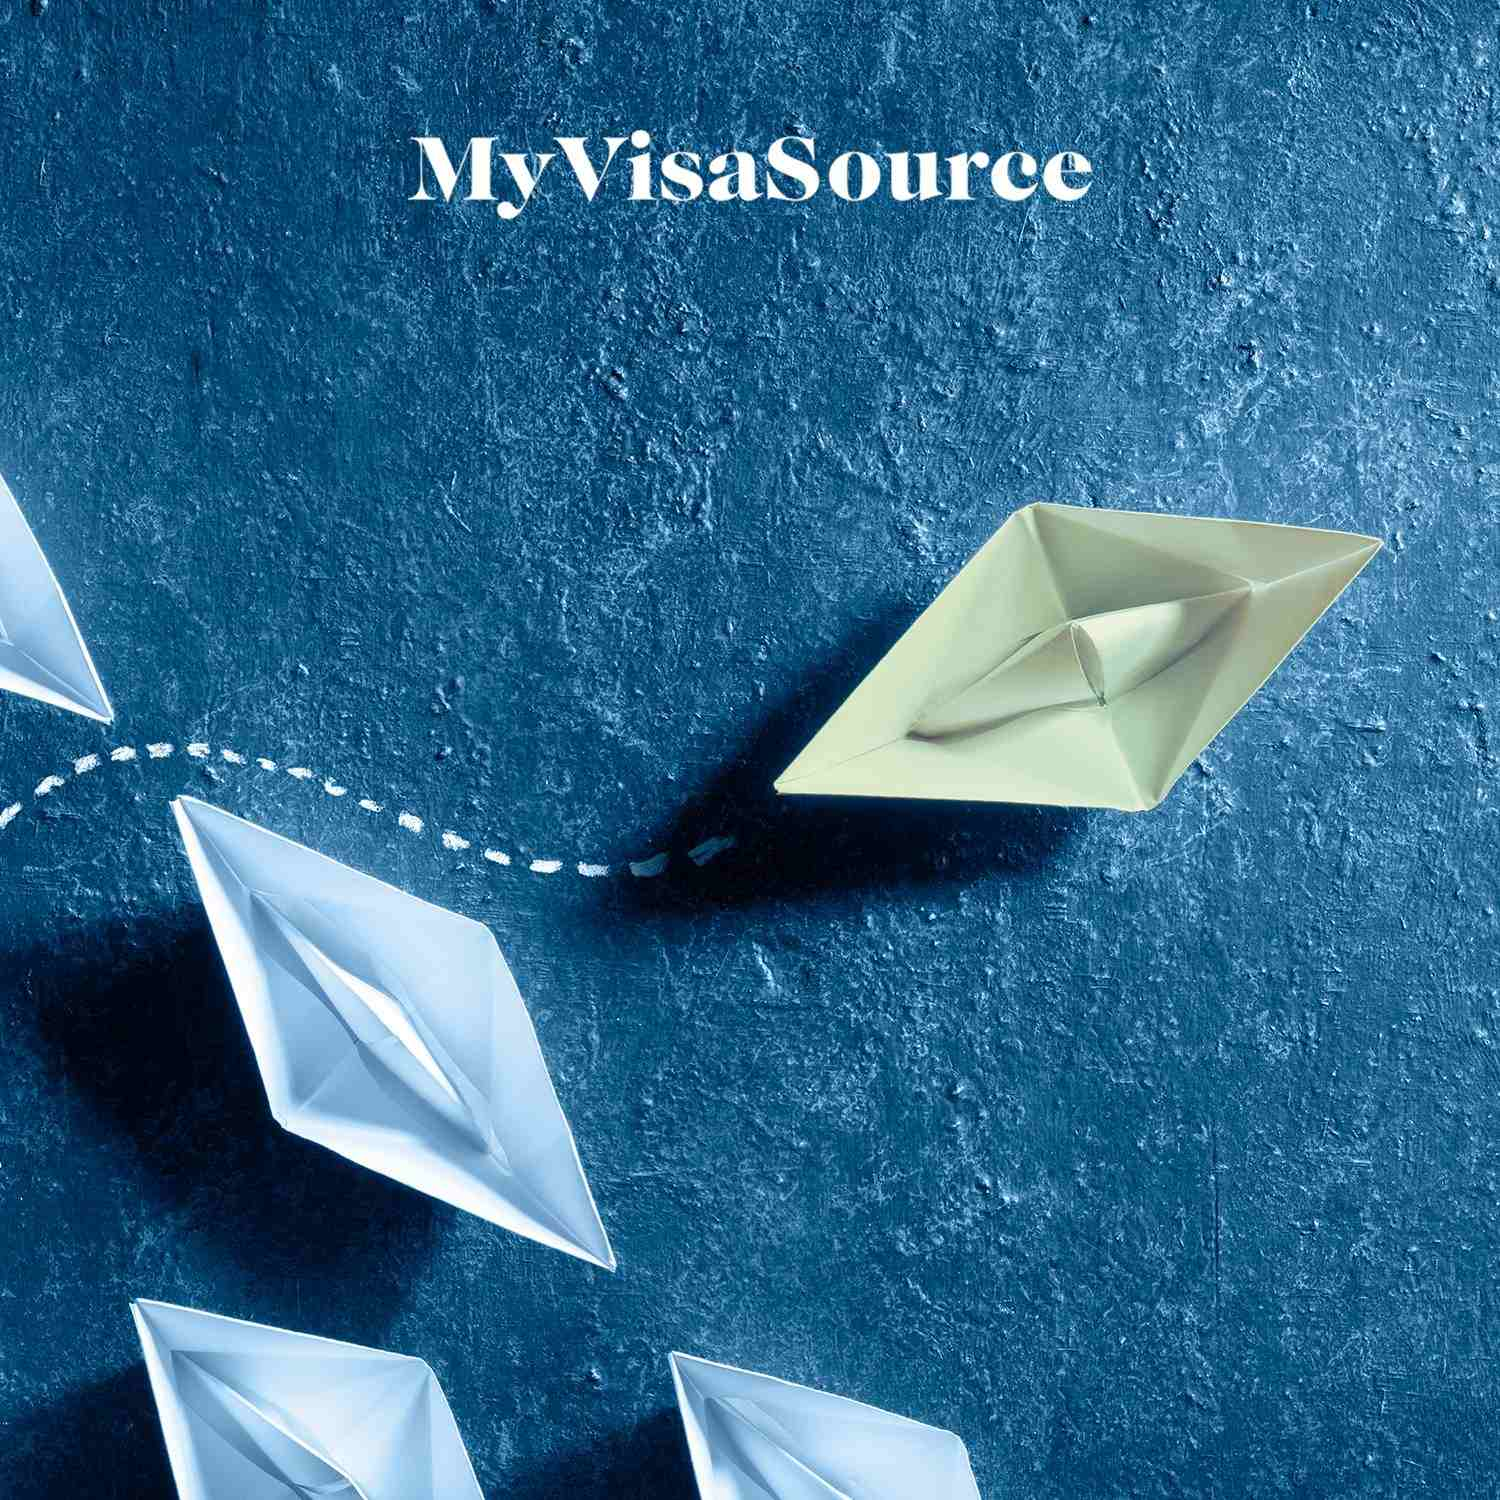 paper boats on the water with one pulling ahead my visa source